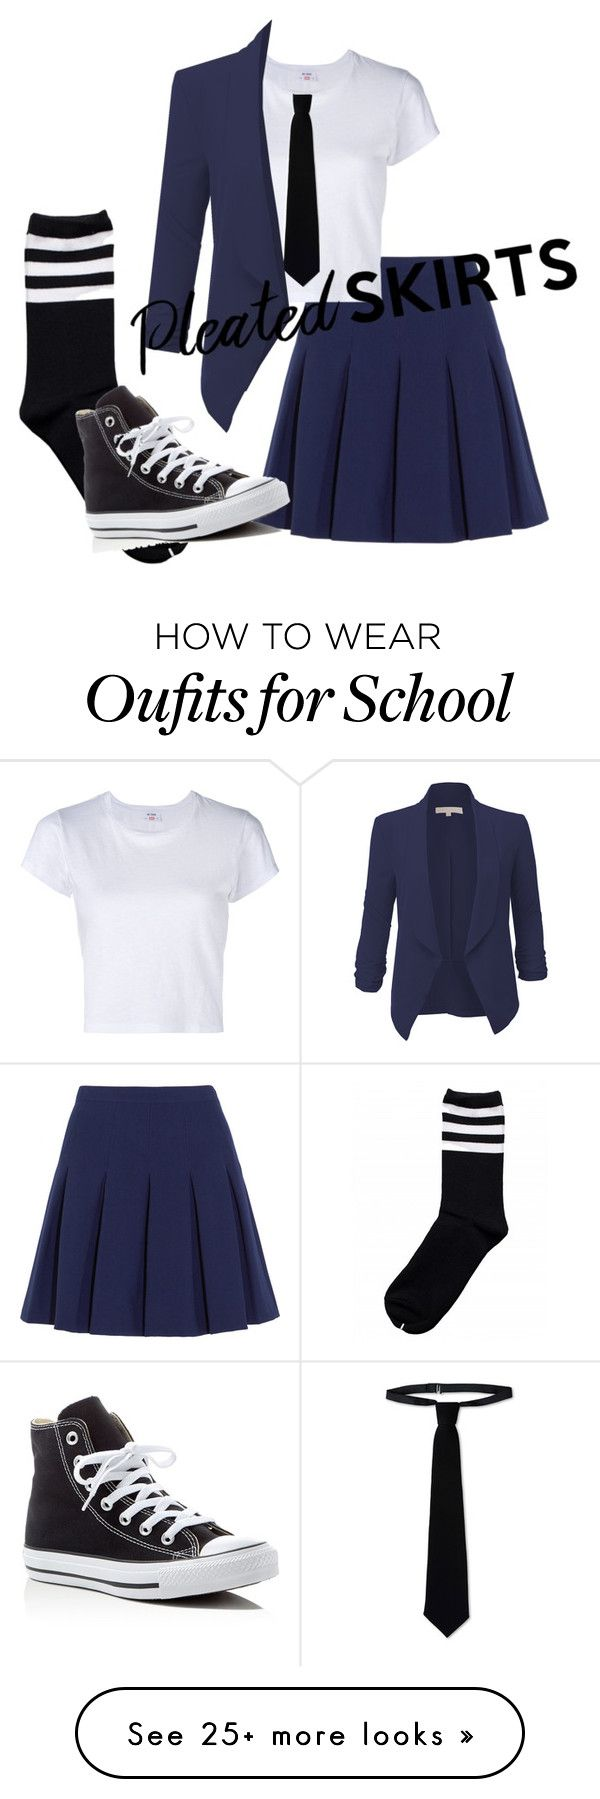 """School Uniform(Contest)"" by fashiontothesky on Polyvore featuring Diane Von Furstenberg, Converse, RE/DONE, RED Valentino, LE3NO and pleatedskirts"